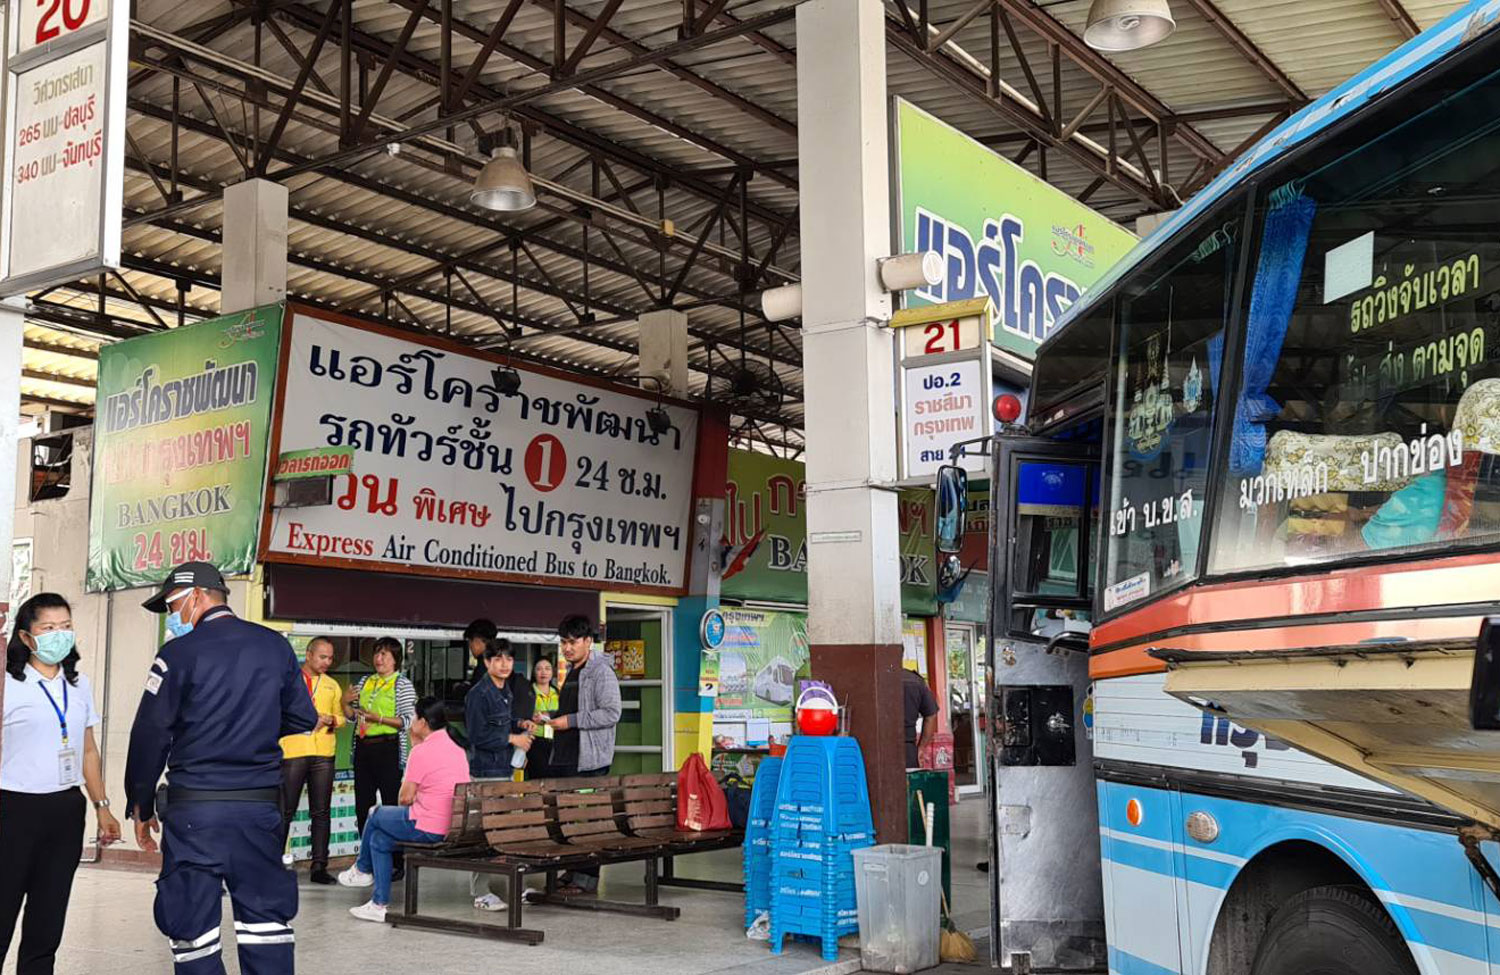 Interprovincial buses operating between Nakhon Ratchasima and Bangkok and other provinces, are ordered to suspend services immediately until further notice as provincial authorities want to prevent the spread of Covid-19. (Photo by Prasit Tangprasert)